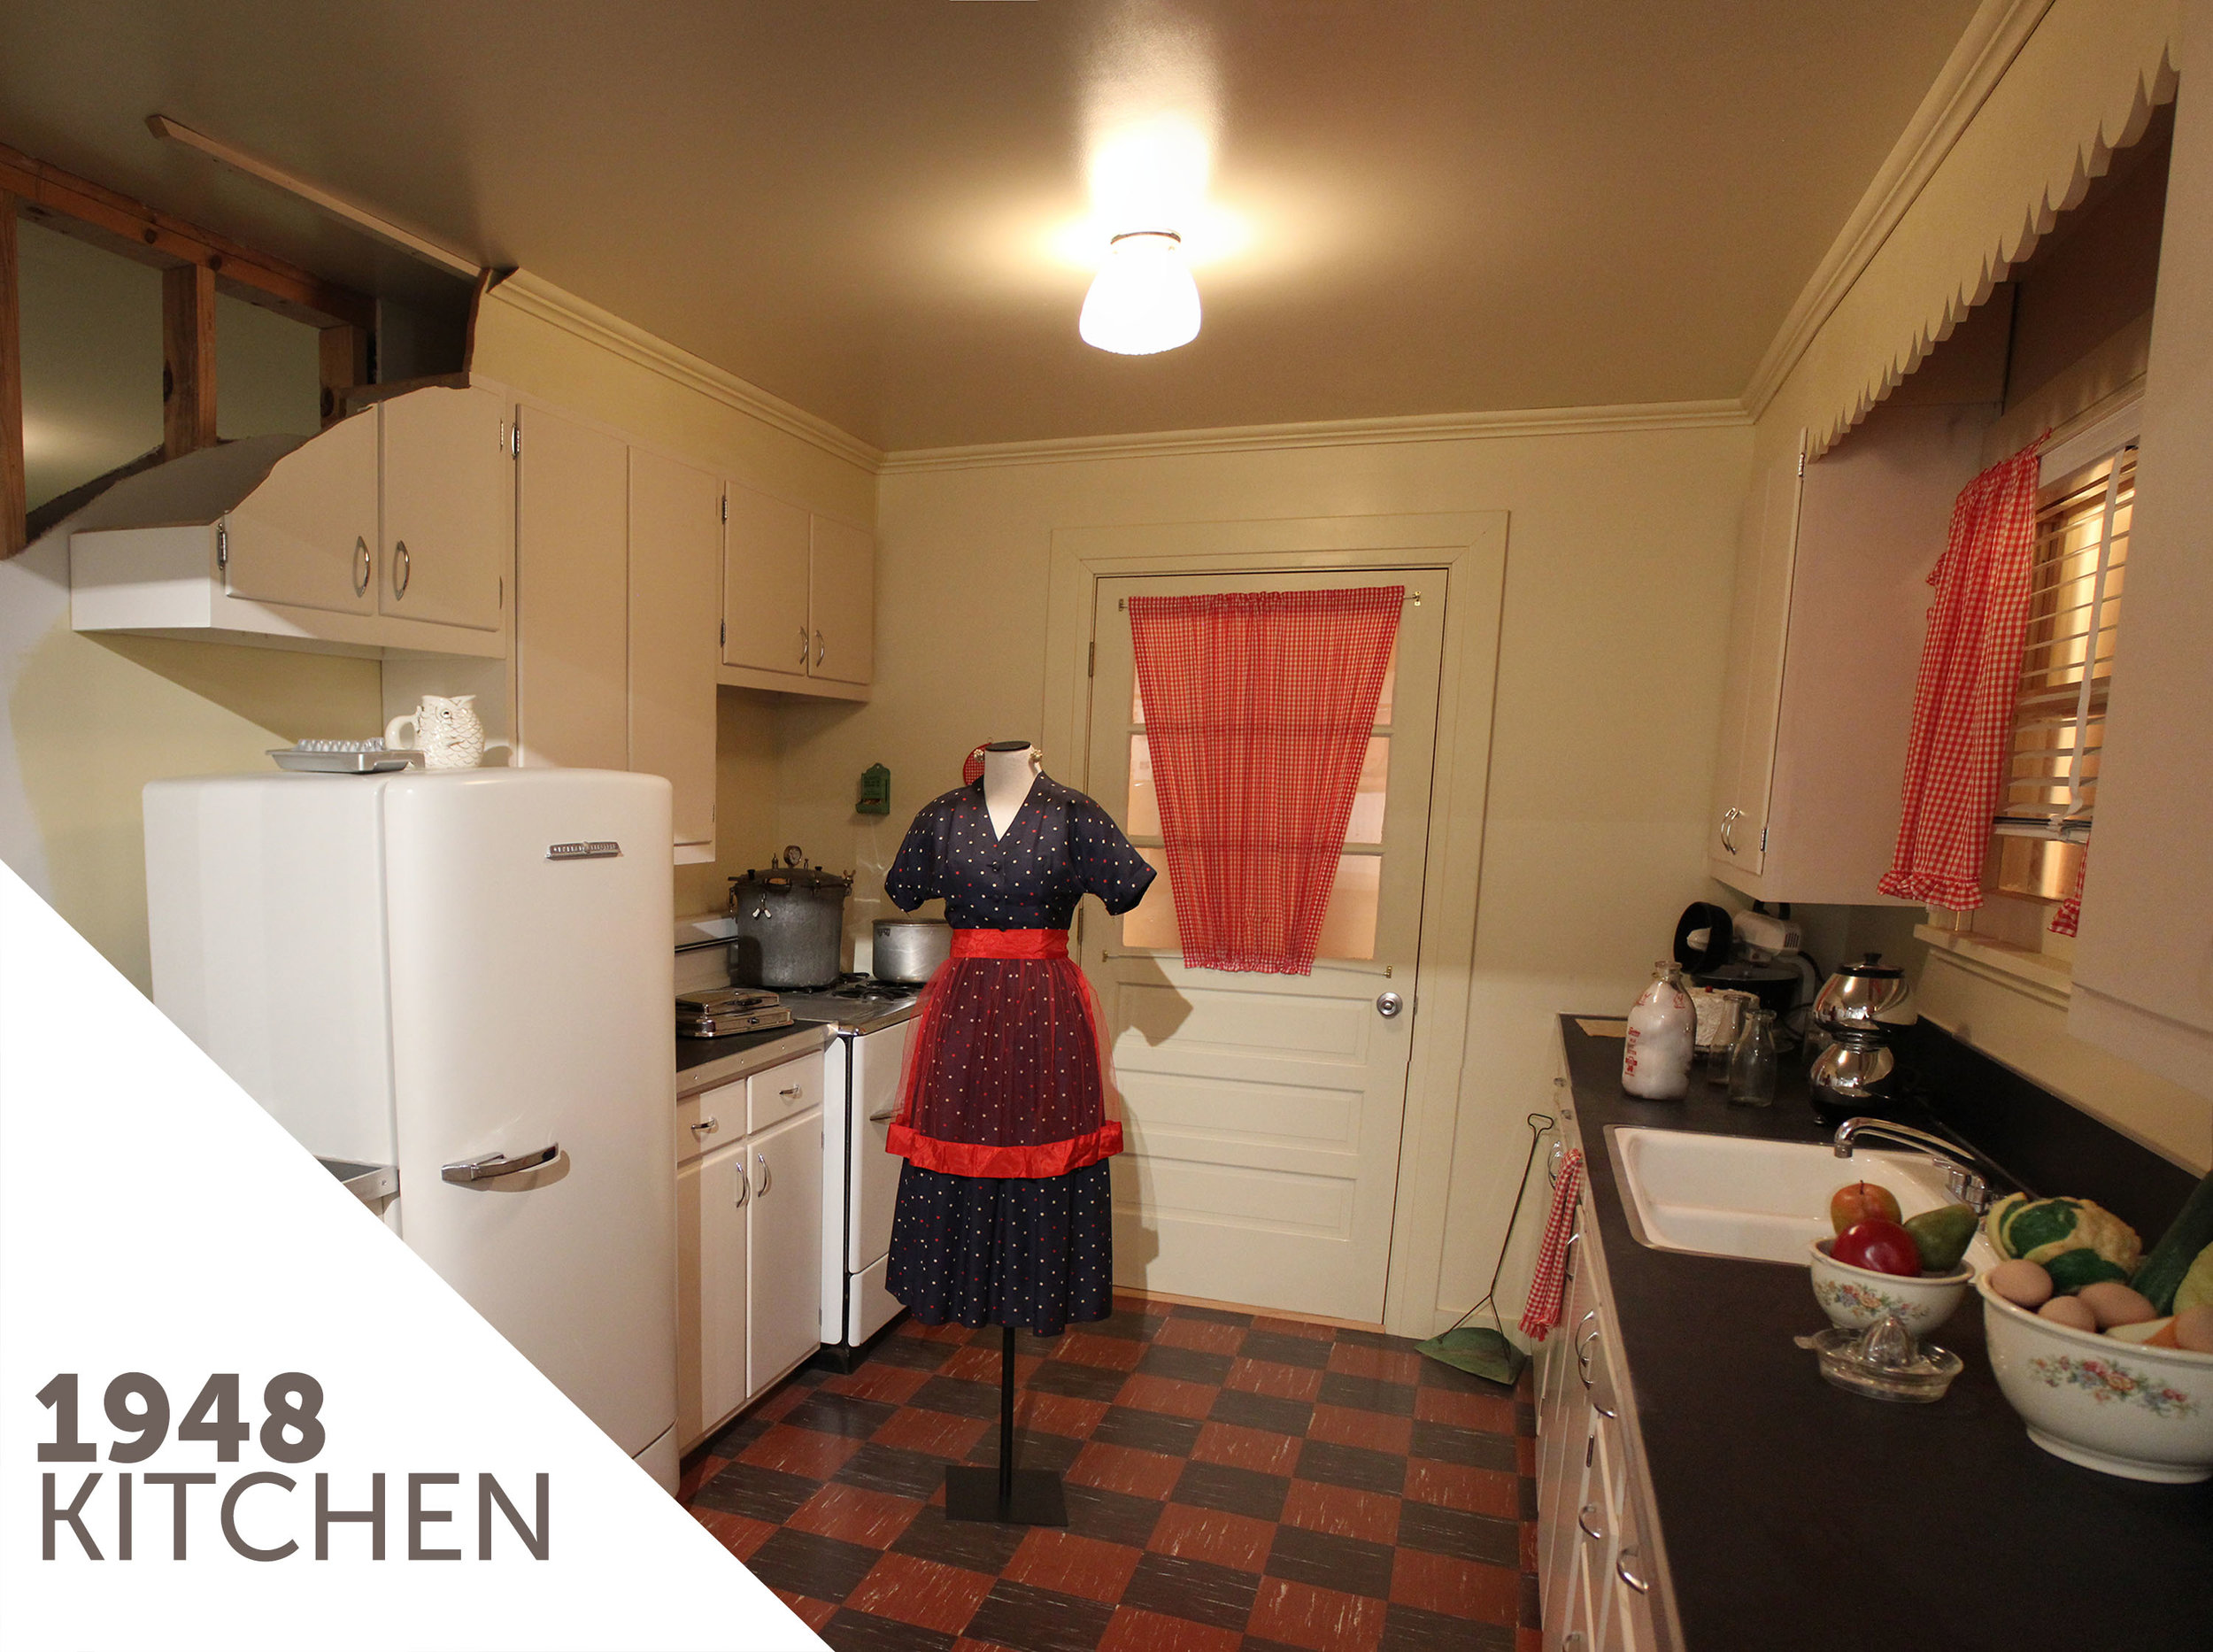 1948_kitchen.jpg